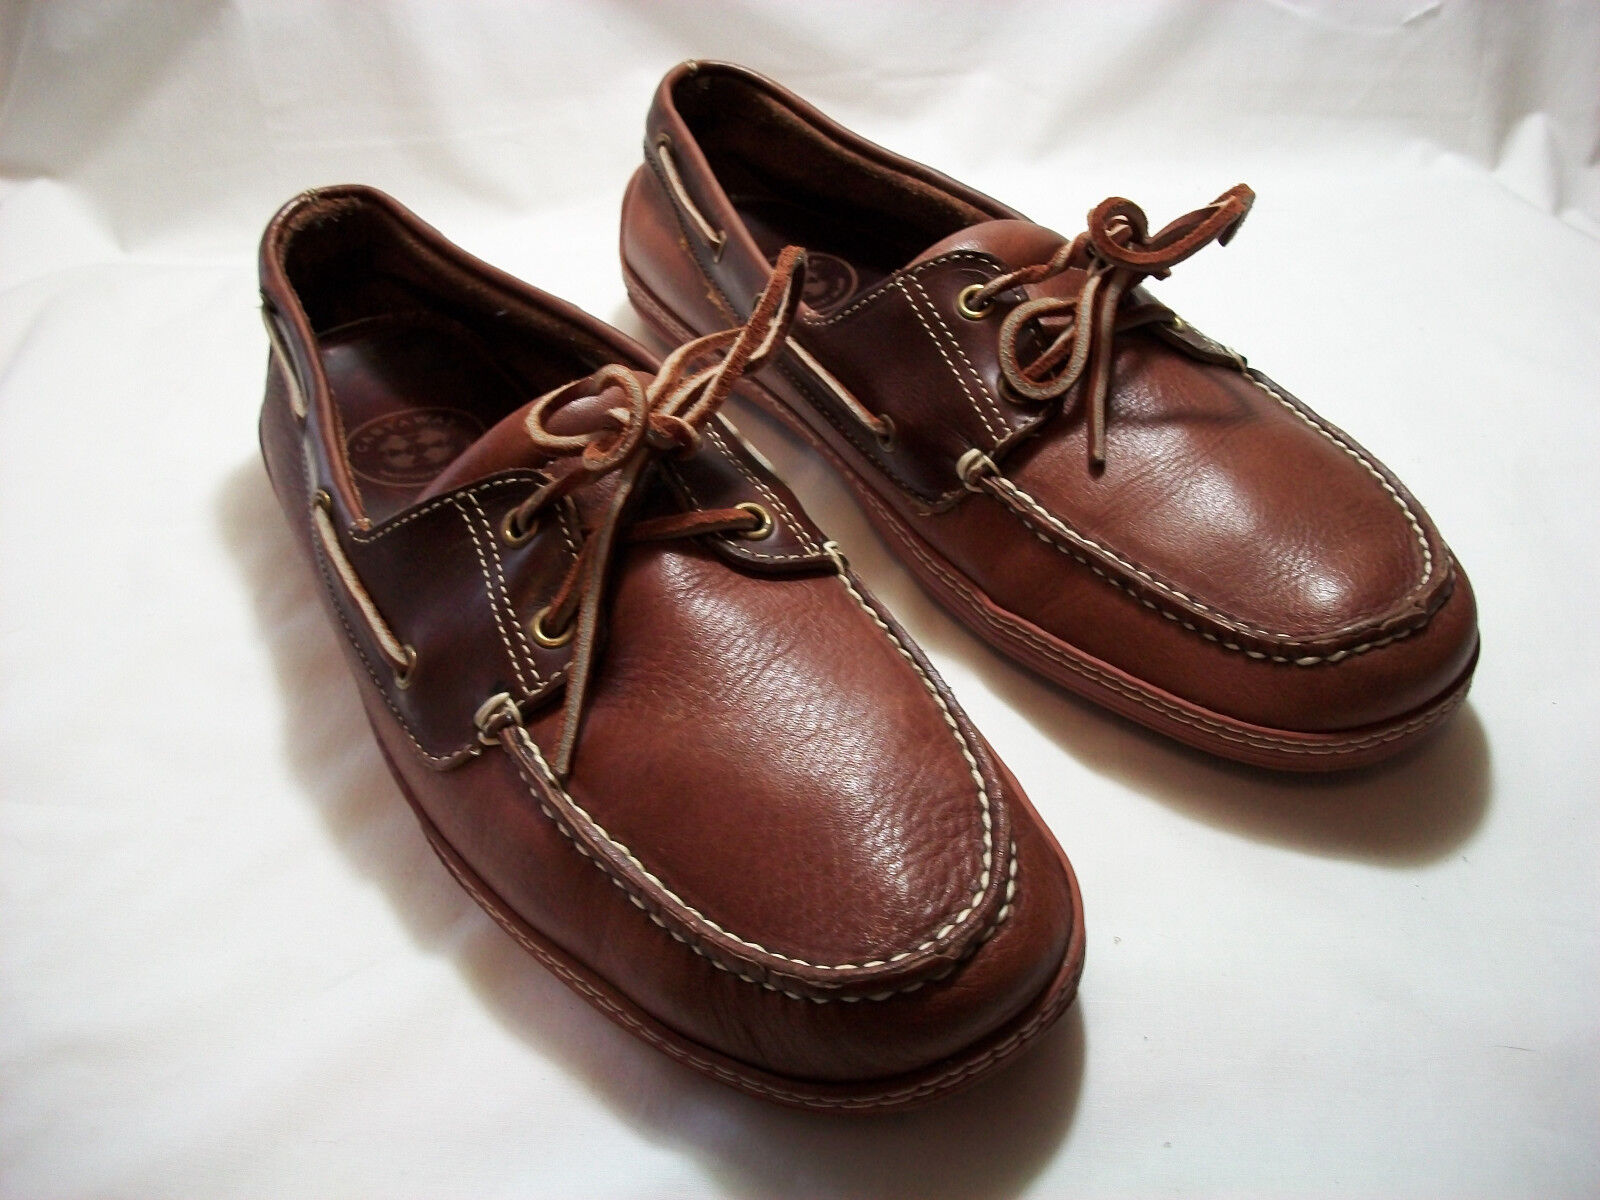 CASTAWAY NANTUCKET TWO TONE BROWN LEATHER DRIVERS BOAT SHOES SIZE 13 M